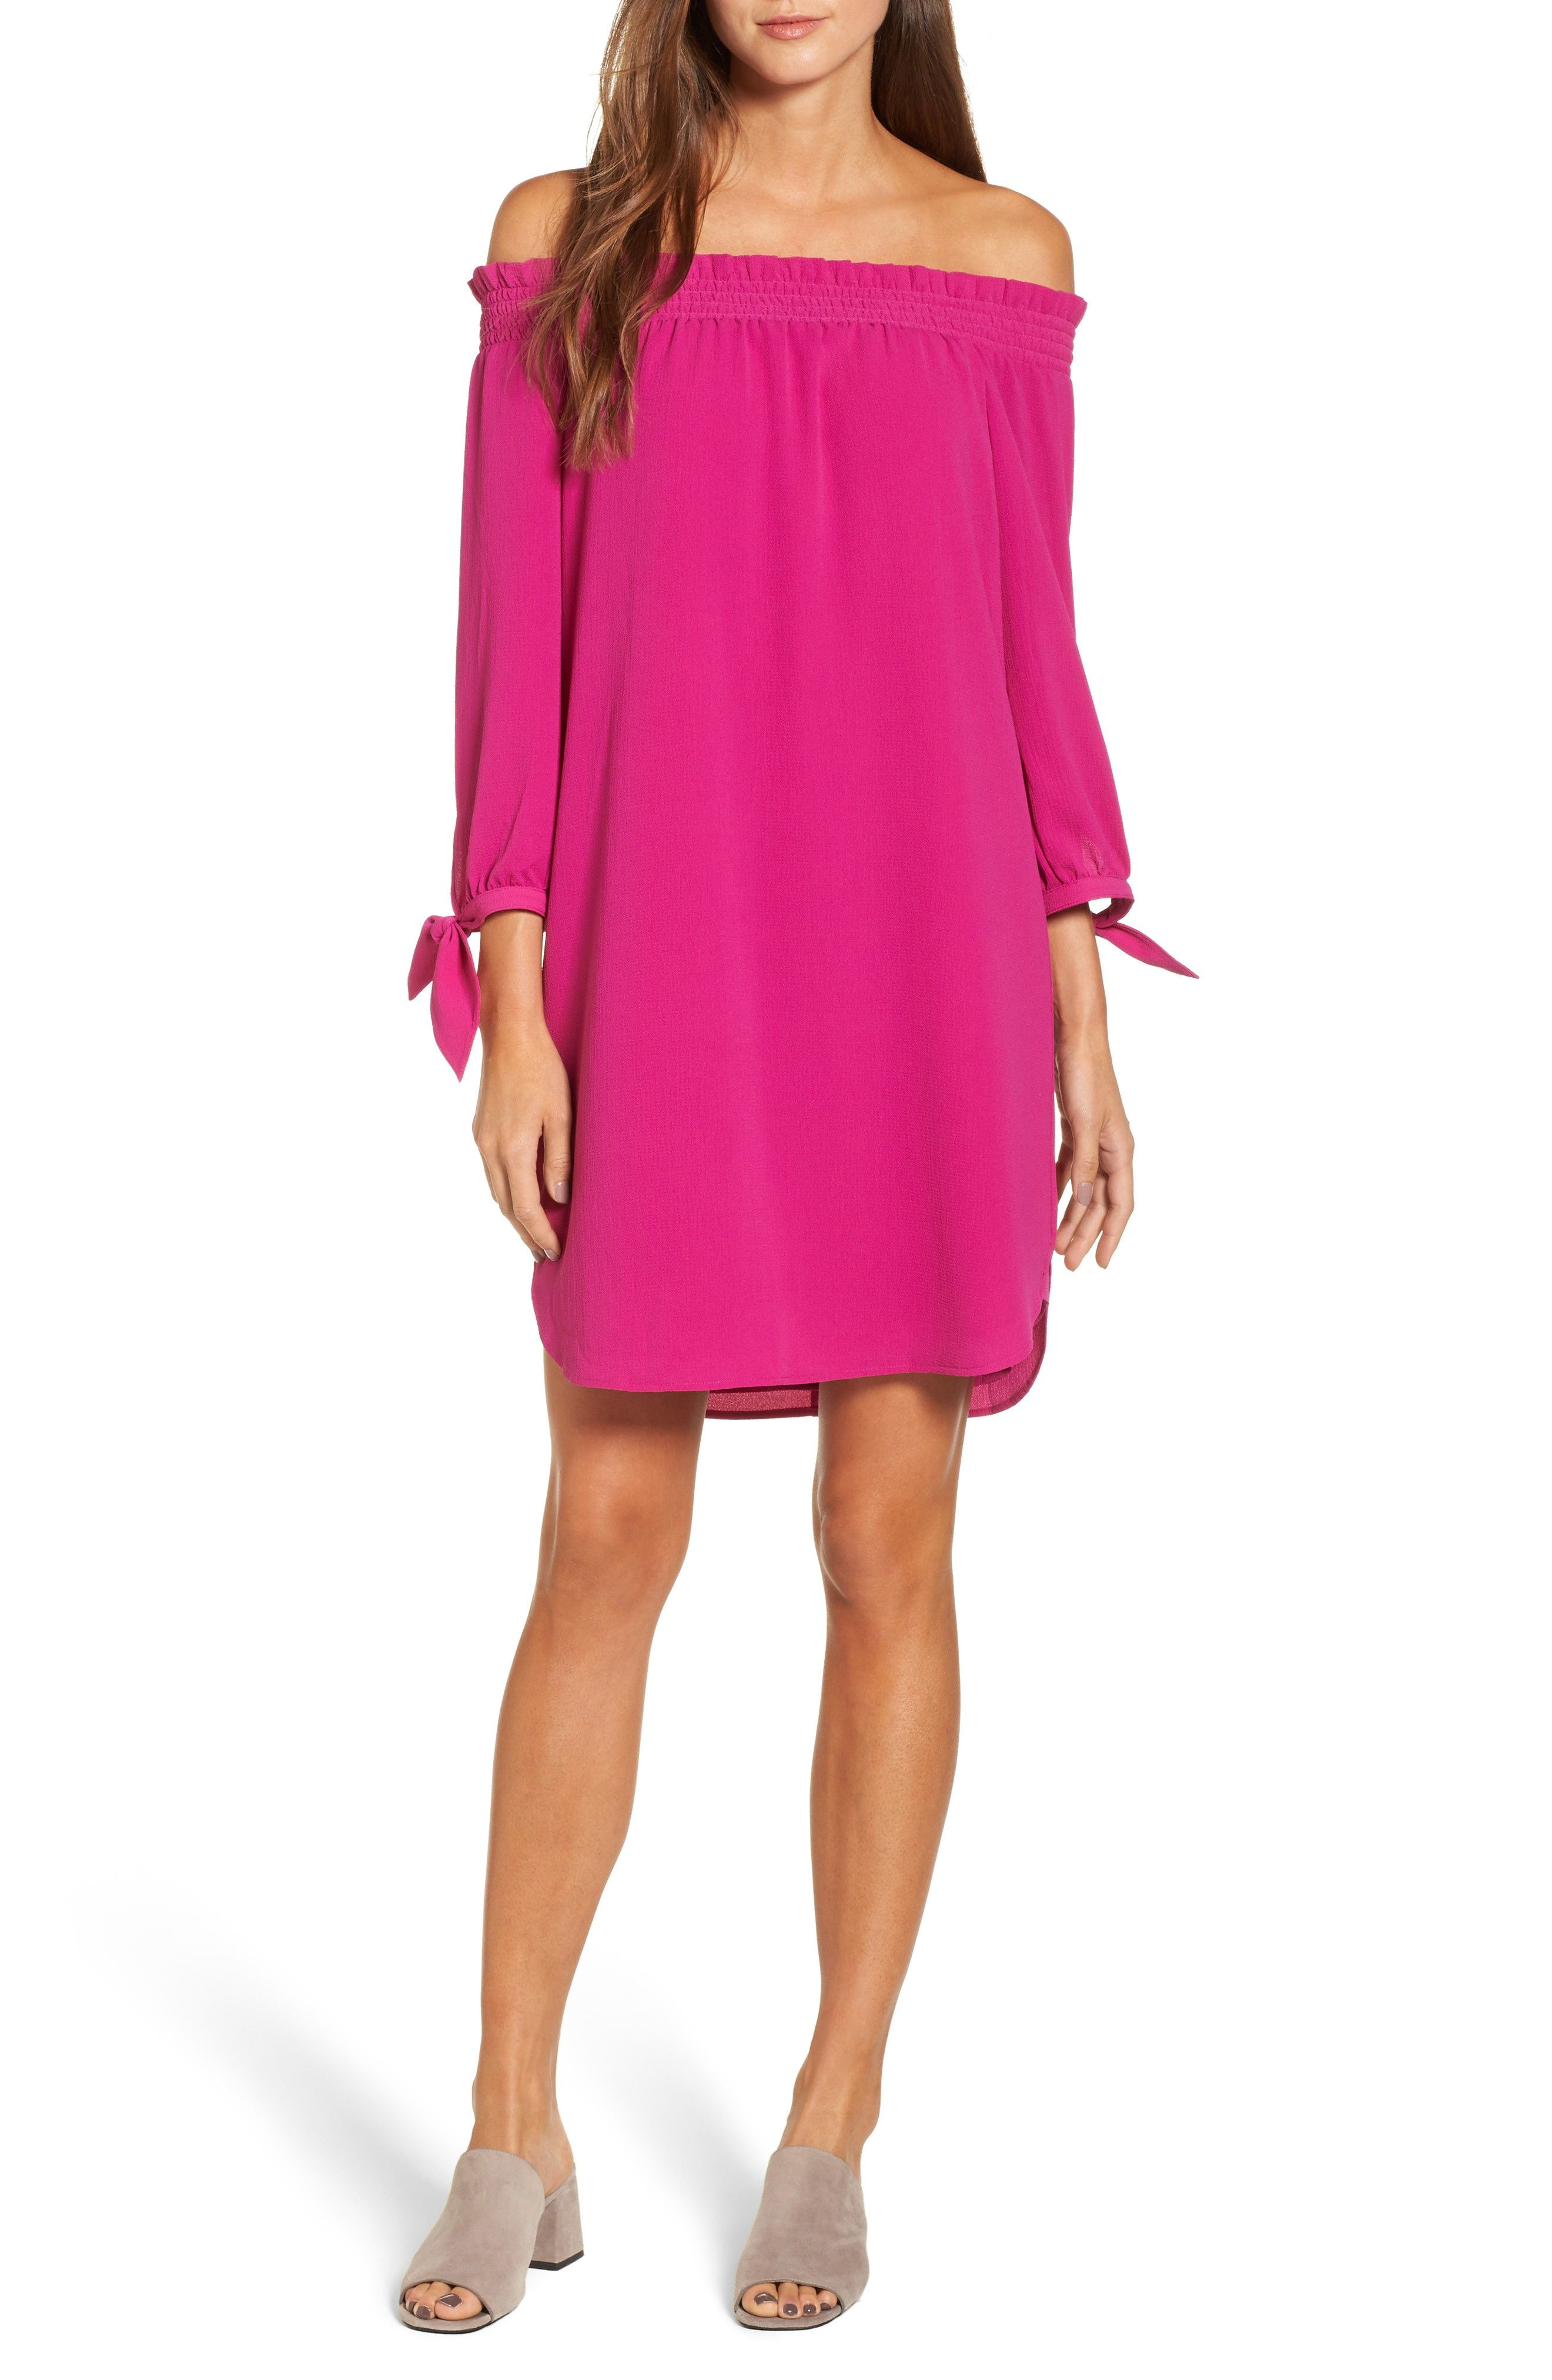 pink off the shoulder dress on sale in the nordstrom anniversary ...